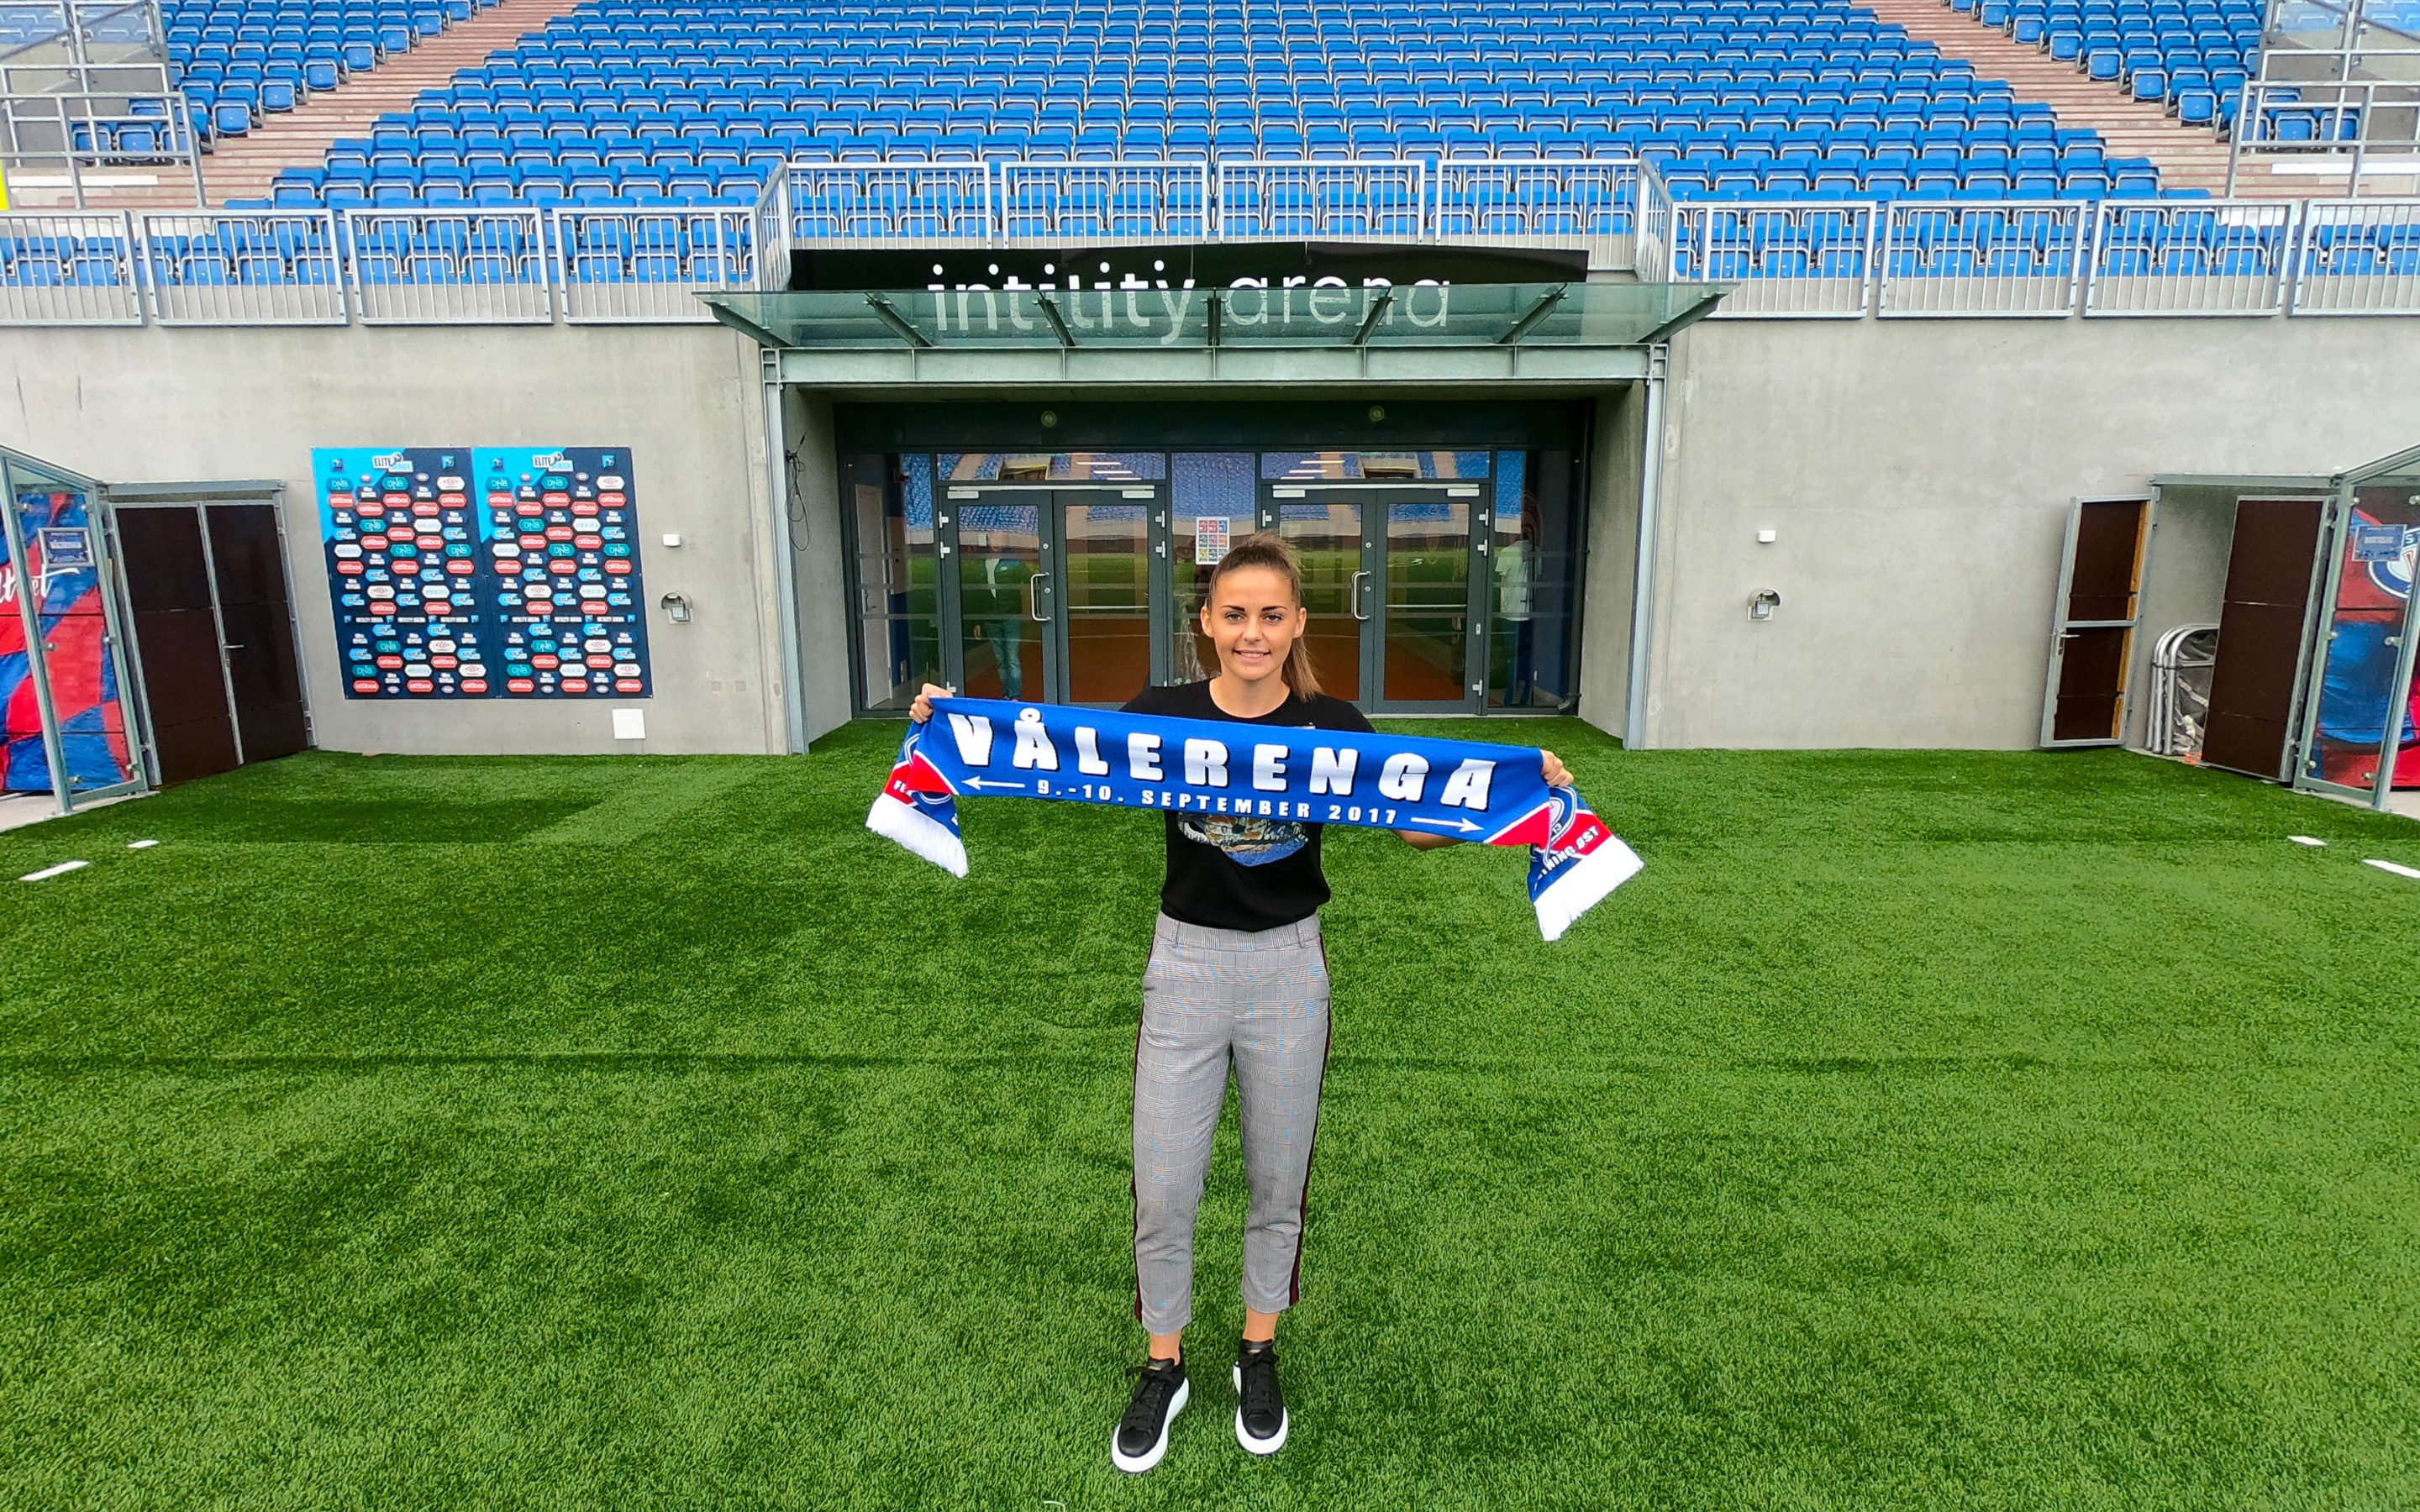 She's coming home – landslagsspiller til Vålerenga